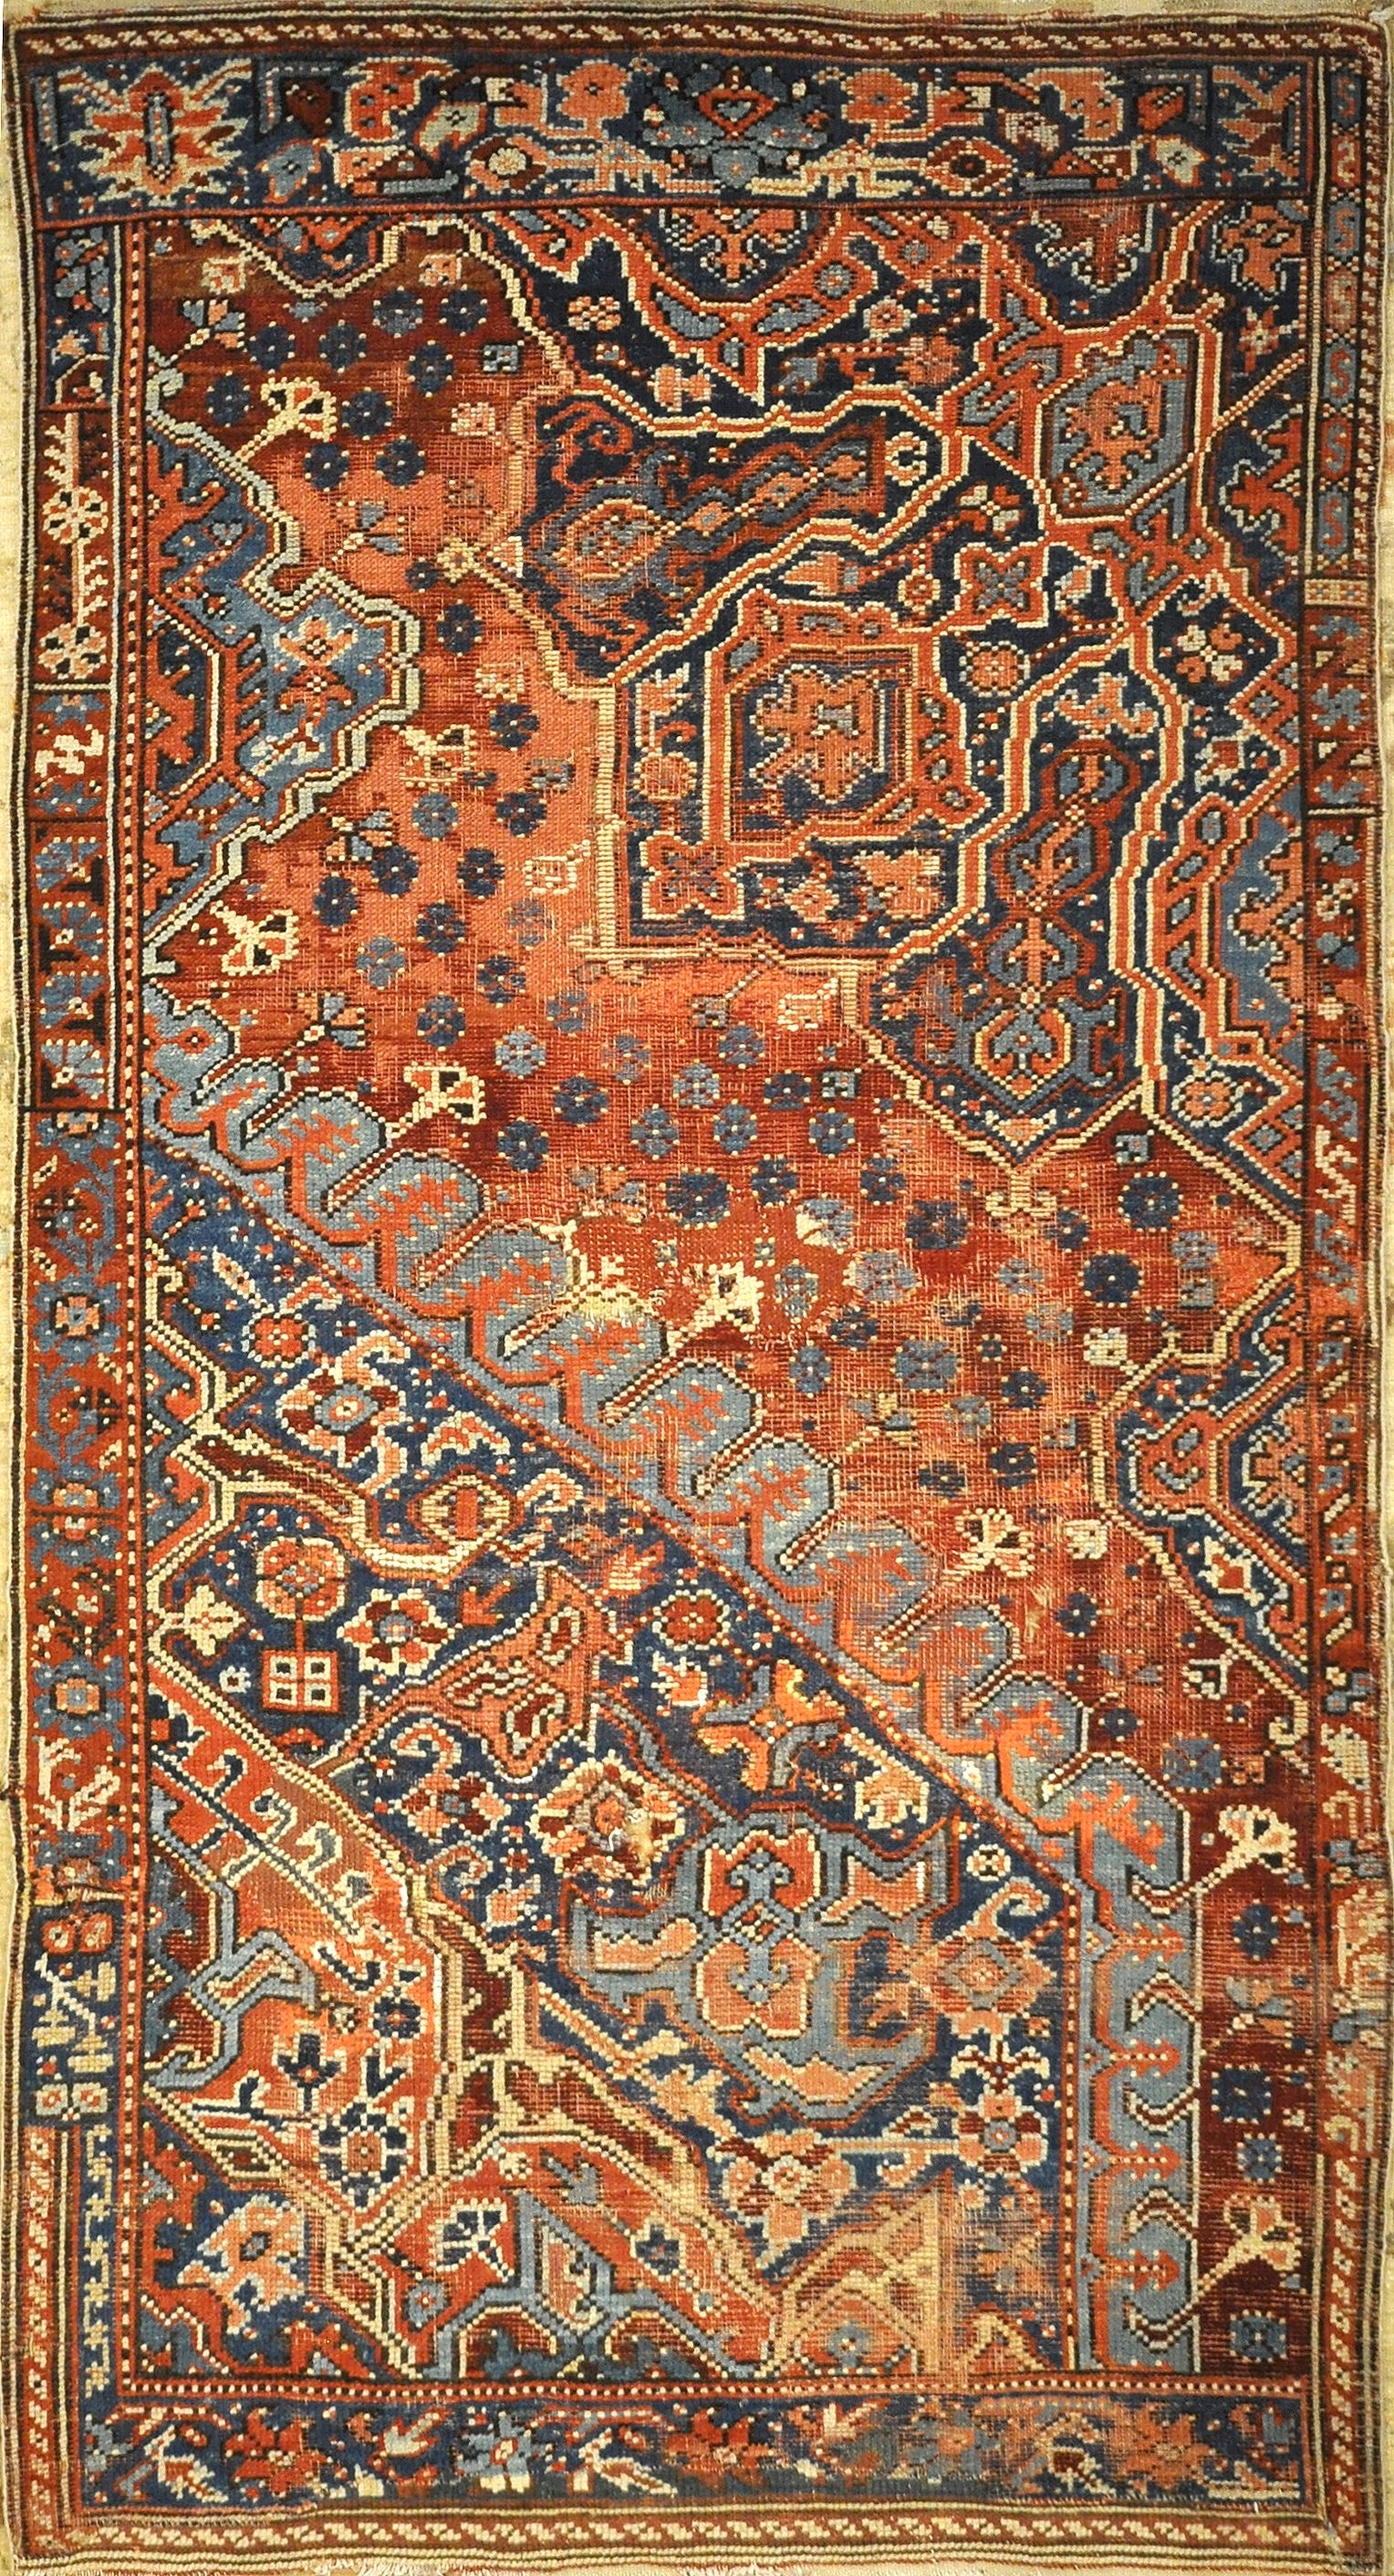 Rare Antique Sampler Oushak Turkish from 17th Century. A piece of genuine authentic woven carpet art sold by Santa Barbara Design Center, Rugs and More.